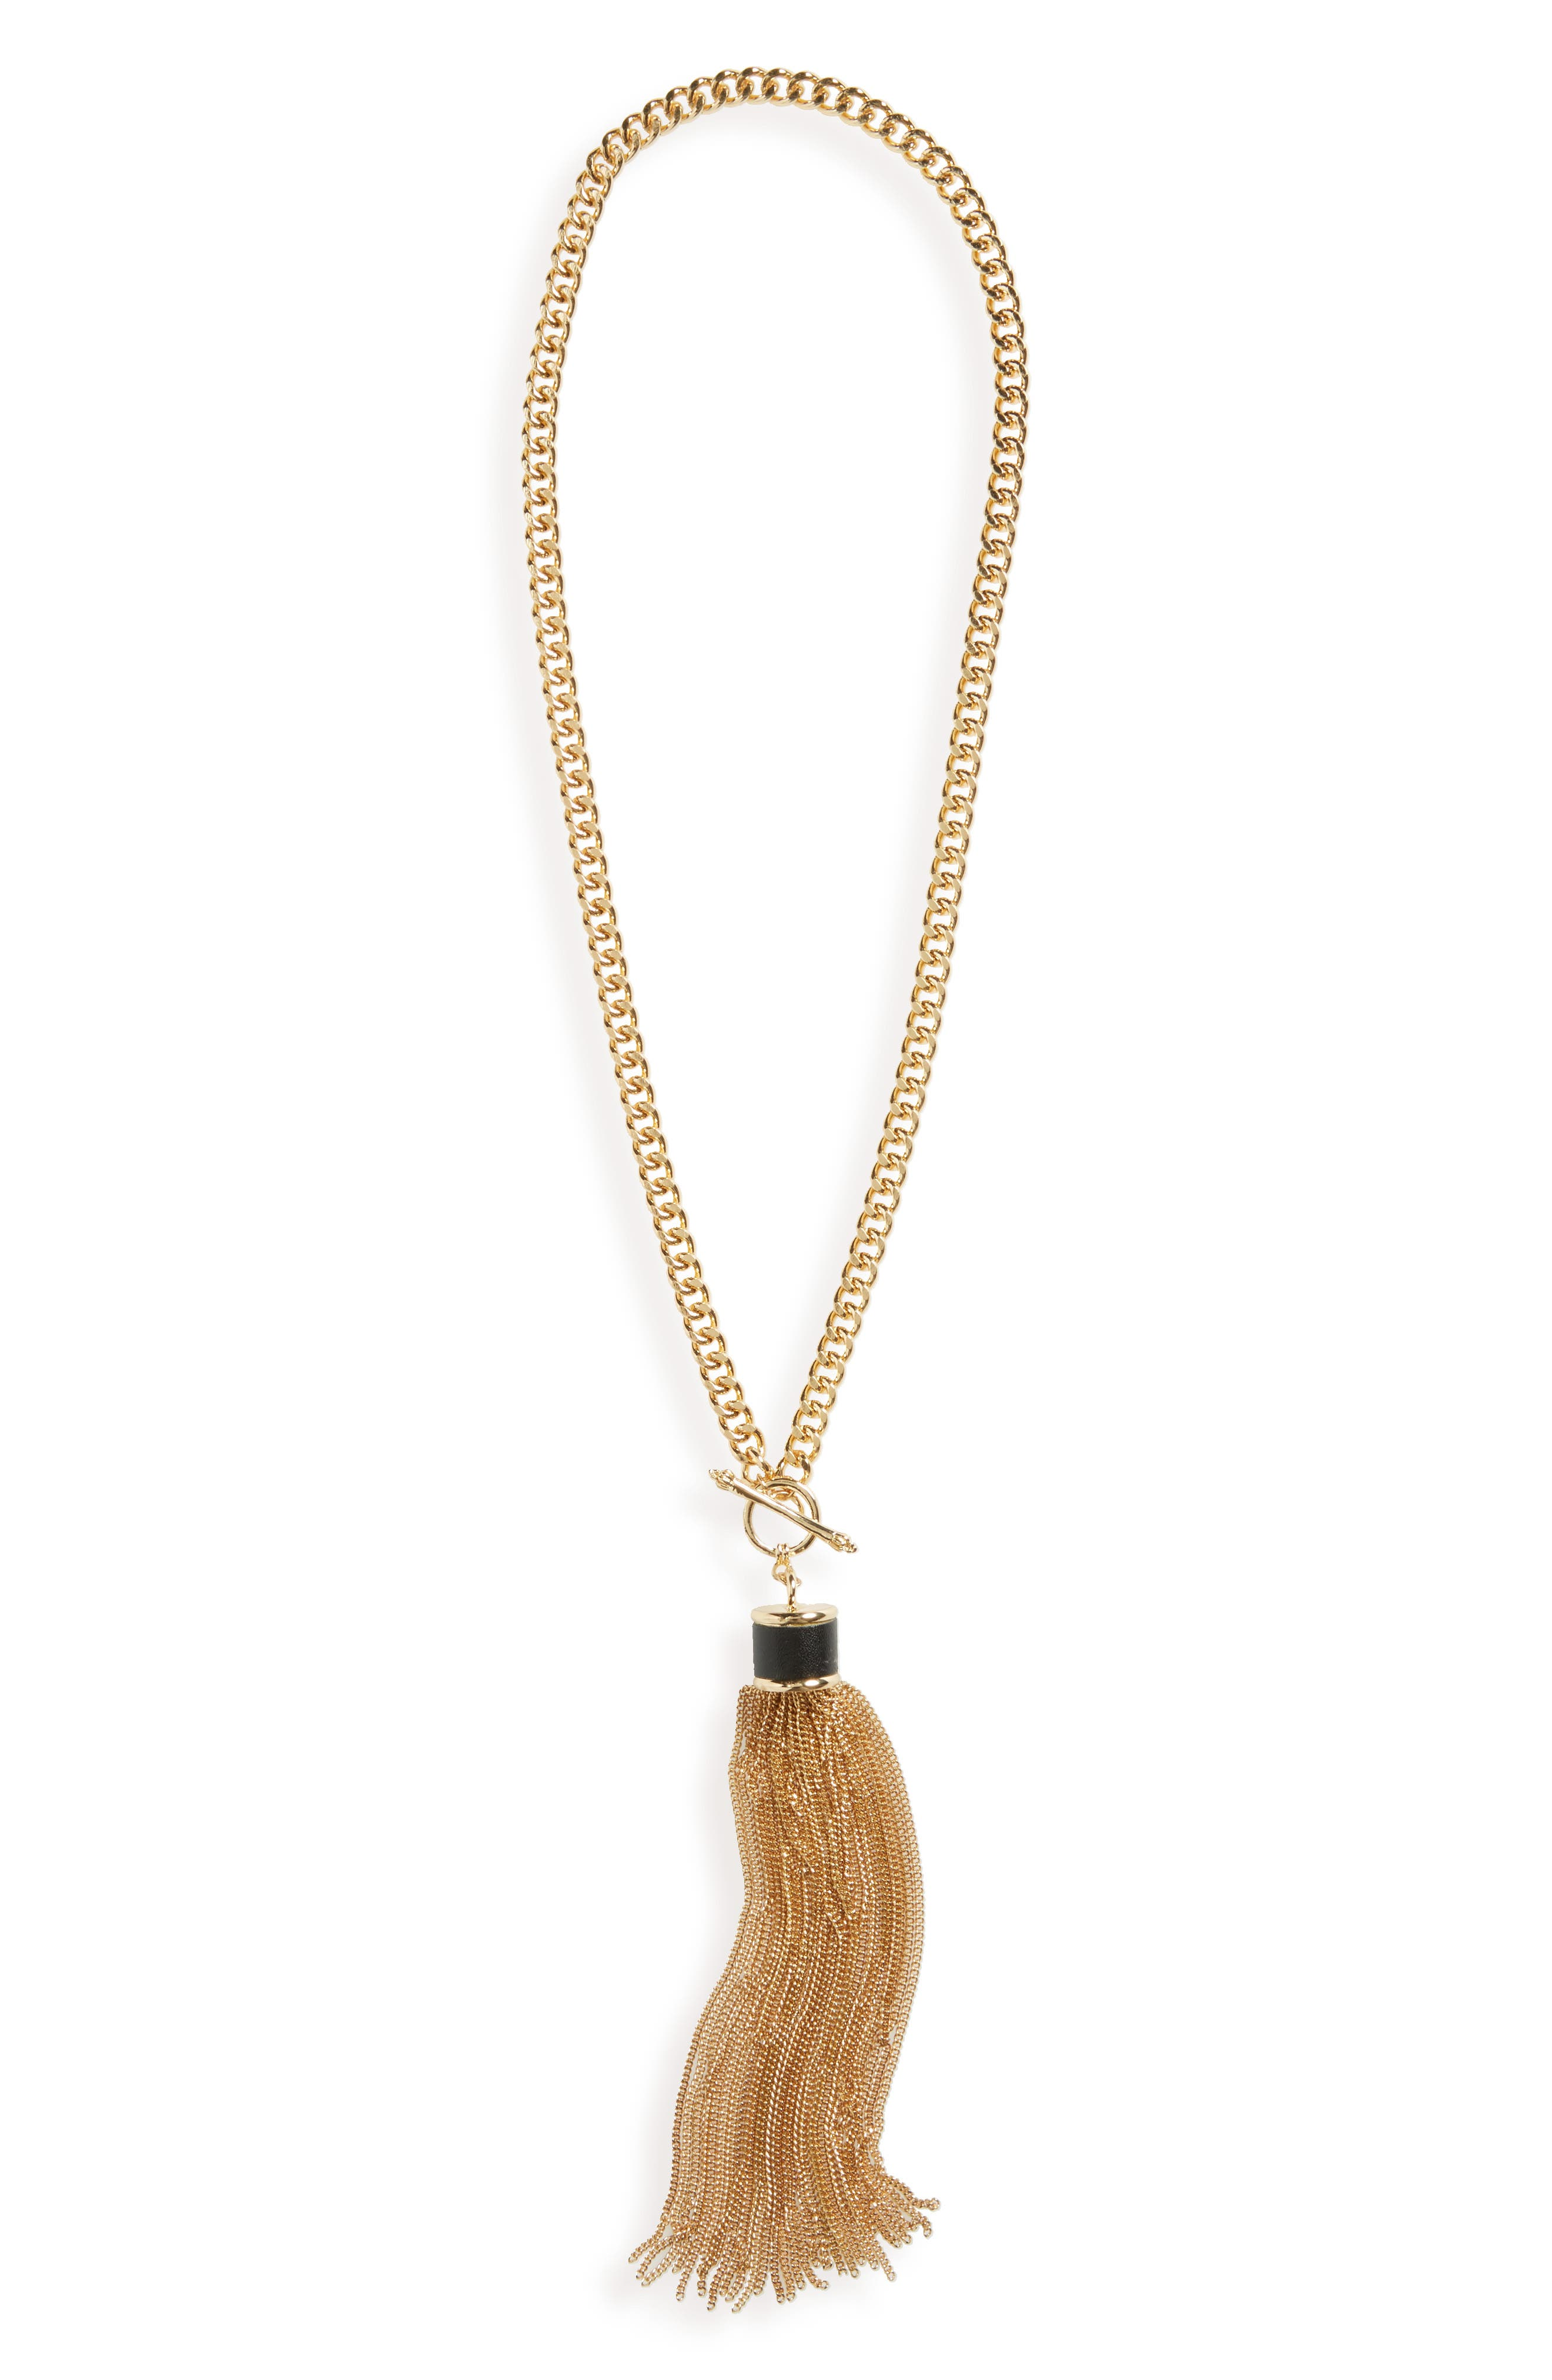 Main Image - Cara Chain Tassel Necklace